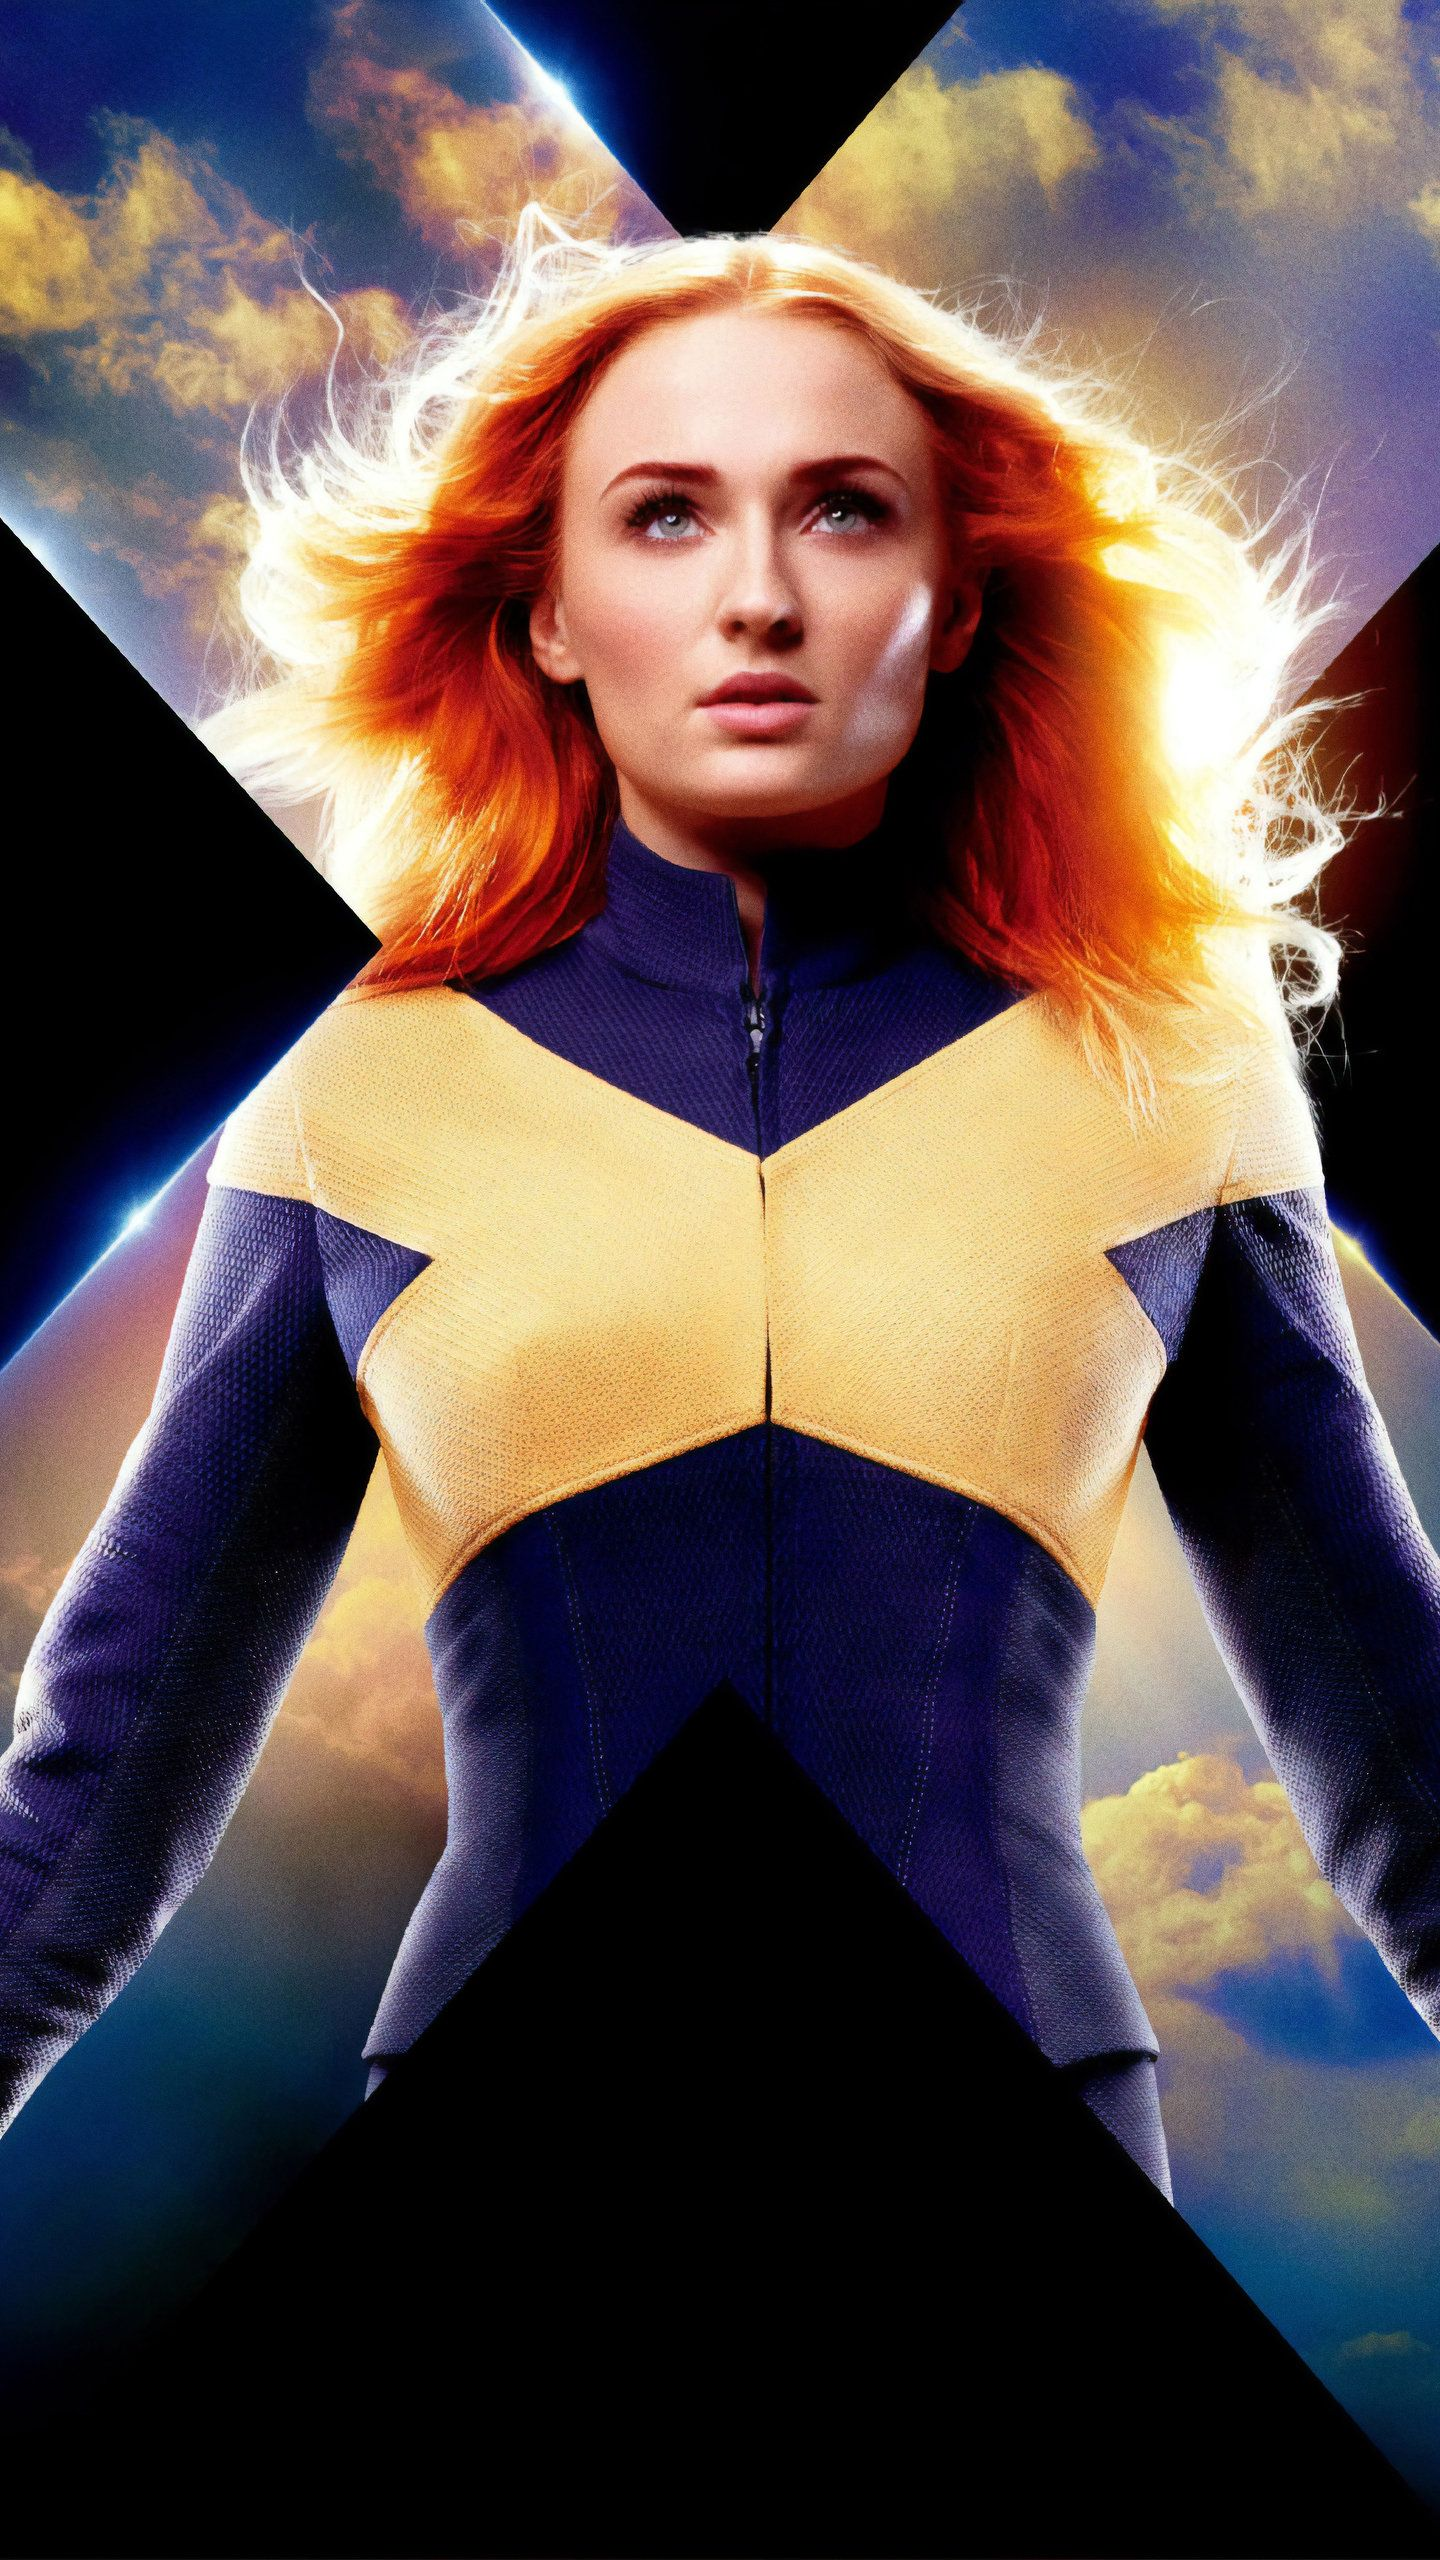 Jean Grey X Men Dark Phoenix Poster Hd Movies Wallpapers Photos And Pictures Hombres X Peliculas Completas Michael Fassbender